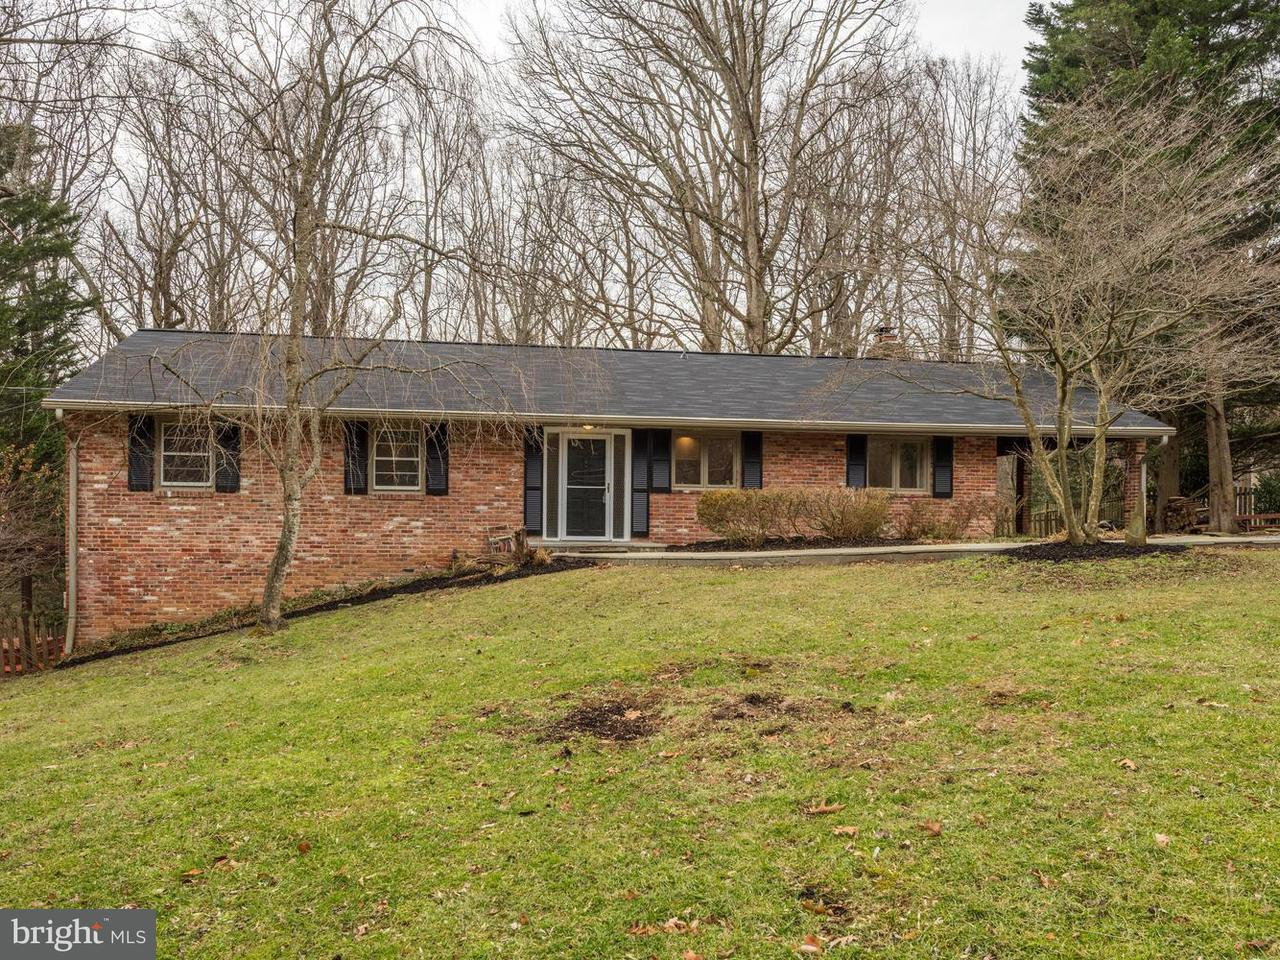 Single Family Home for Sale at 9127 Weant Drive 9127 Weant Drive Great Falls, Virginia 22066 United States